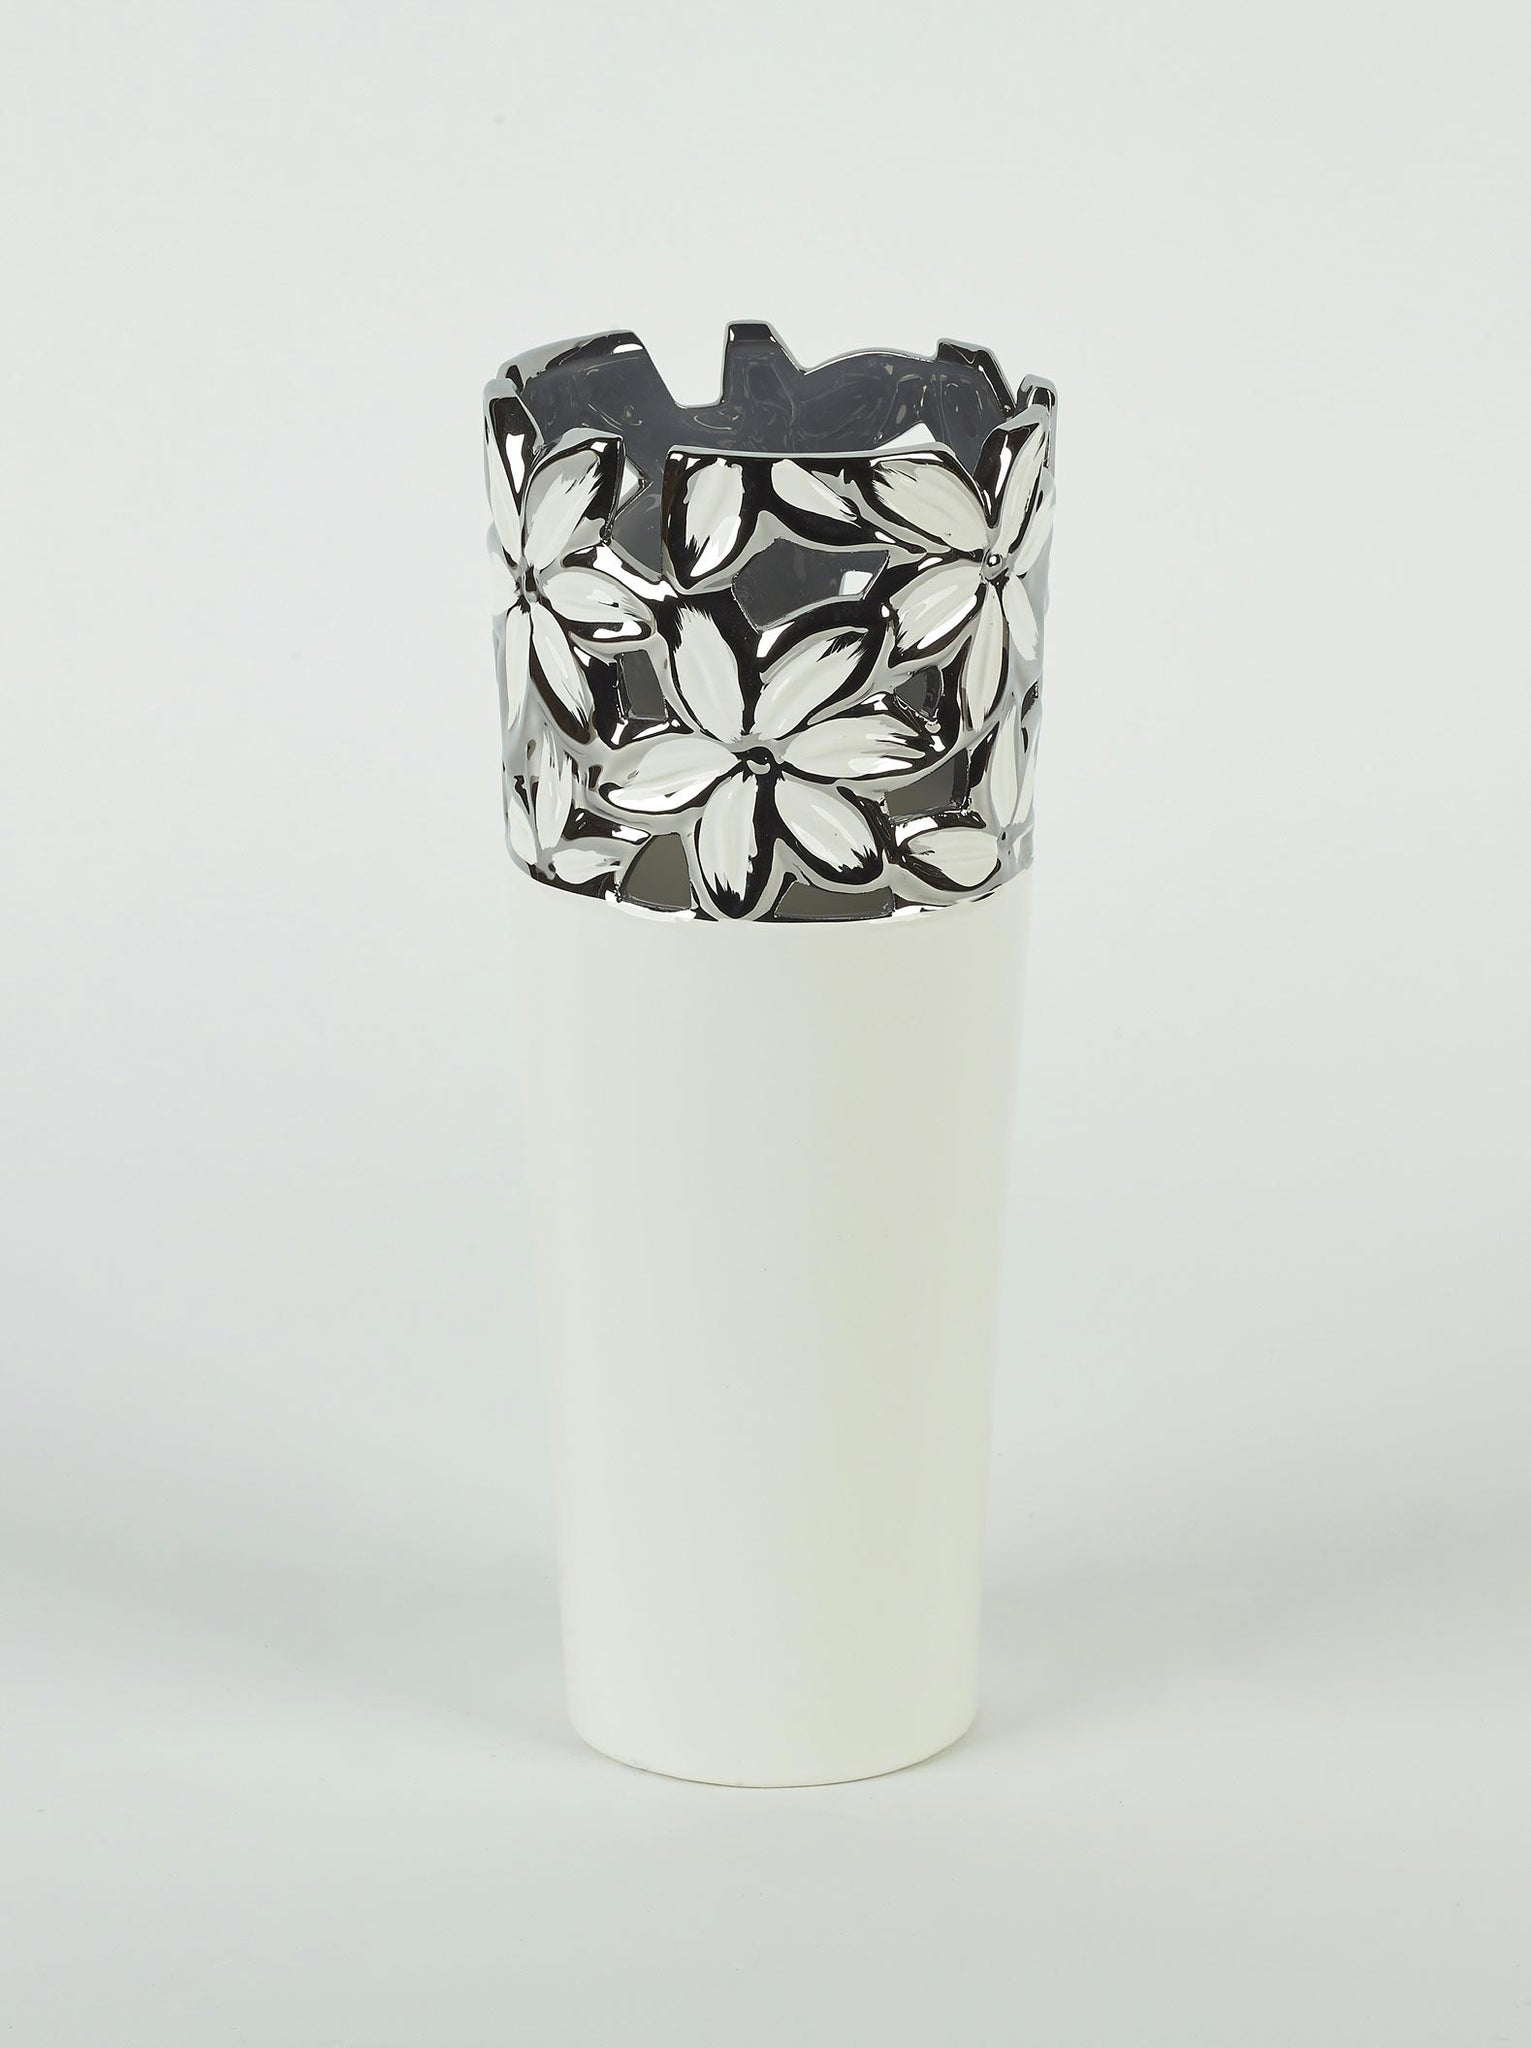 White Ceramic Vase with Silver Flower Design